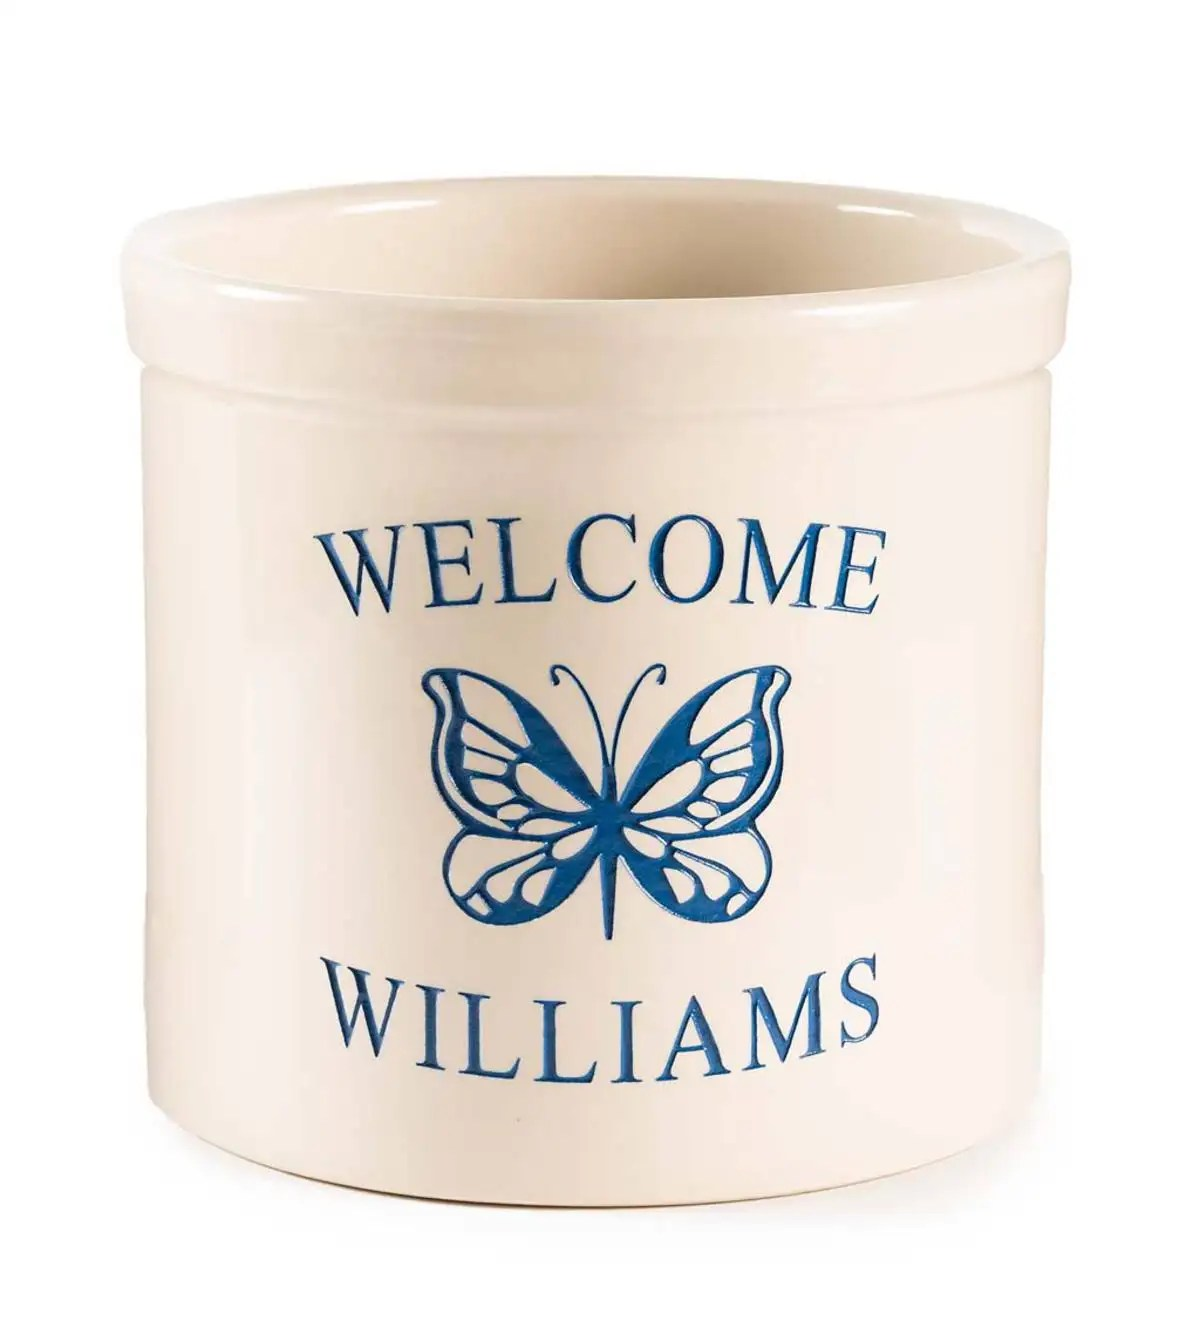 personalized stoneware crock with